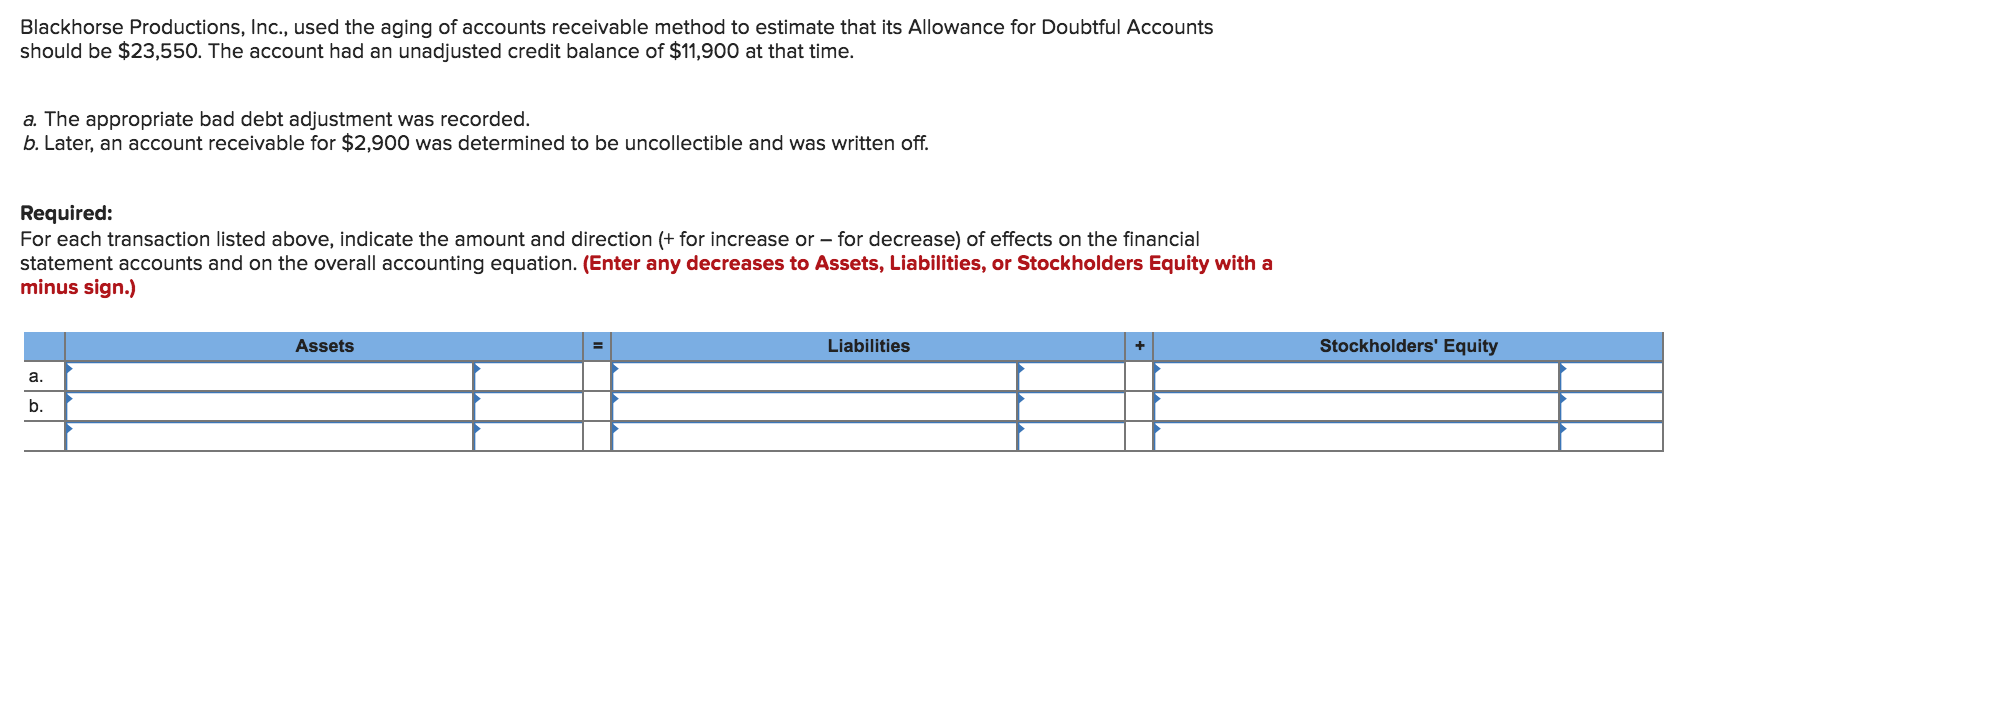 Blackhorse Productions, Inc., used the aging of accounts receivable method to estimate that its Allowance for Doubtful Accounts should be $23,550. The account had an unadjusted credit balance of $11,900 at that time. a. The appropriate bad debt adjustment was recorded. b. Later, an account receivable for $2,900 was determined to be uncollectible and was written off. Required: For each transaction listed above, indicate the amount and direction +for increase or -for decrease) of effects on the financial statement accounts and on the overall accounting equation. (Enter any decreases to Assets, Liabilities, or Stockholders Equity with a minus sign.) Assets Liabilities Stockholders' Equity